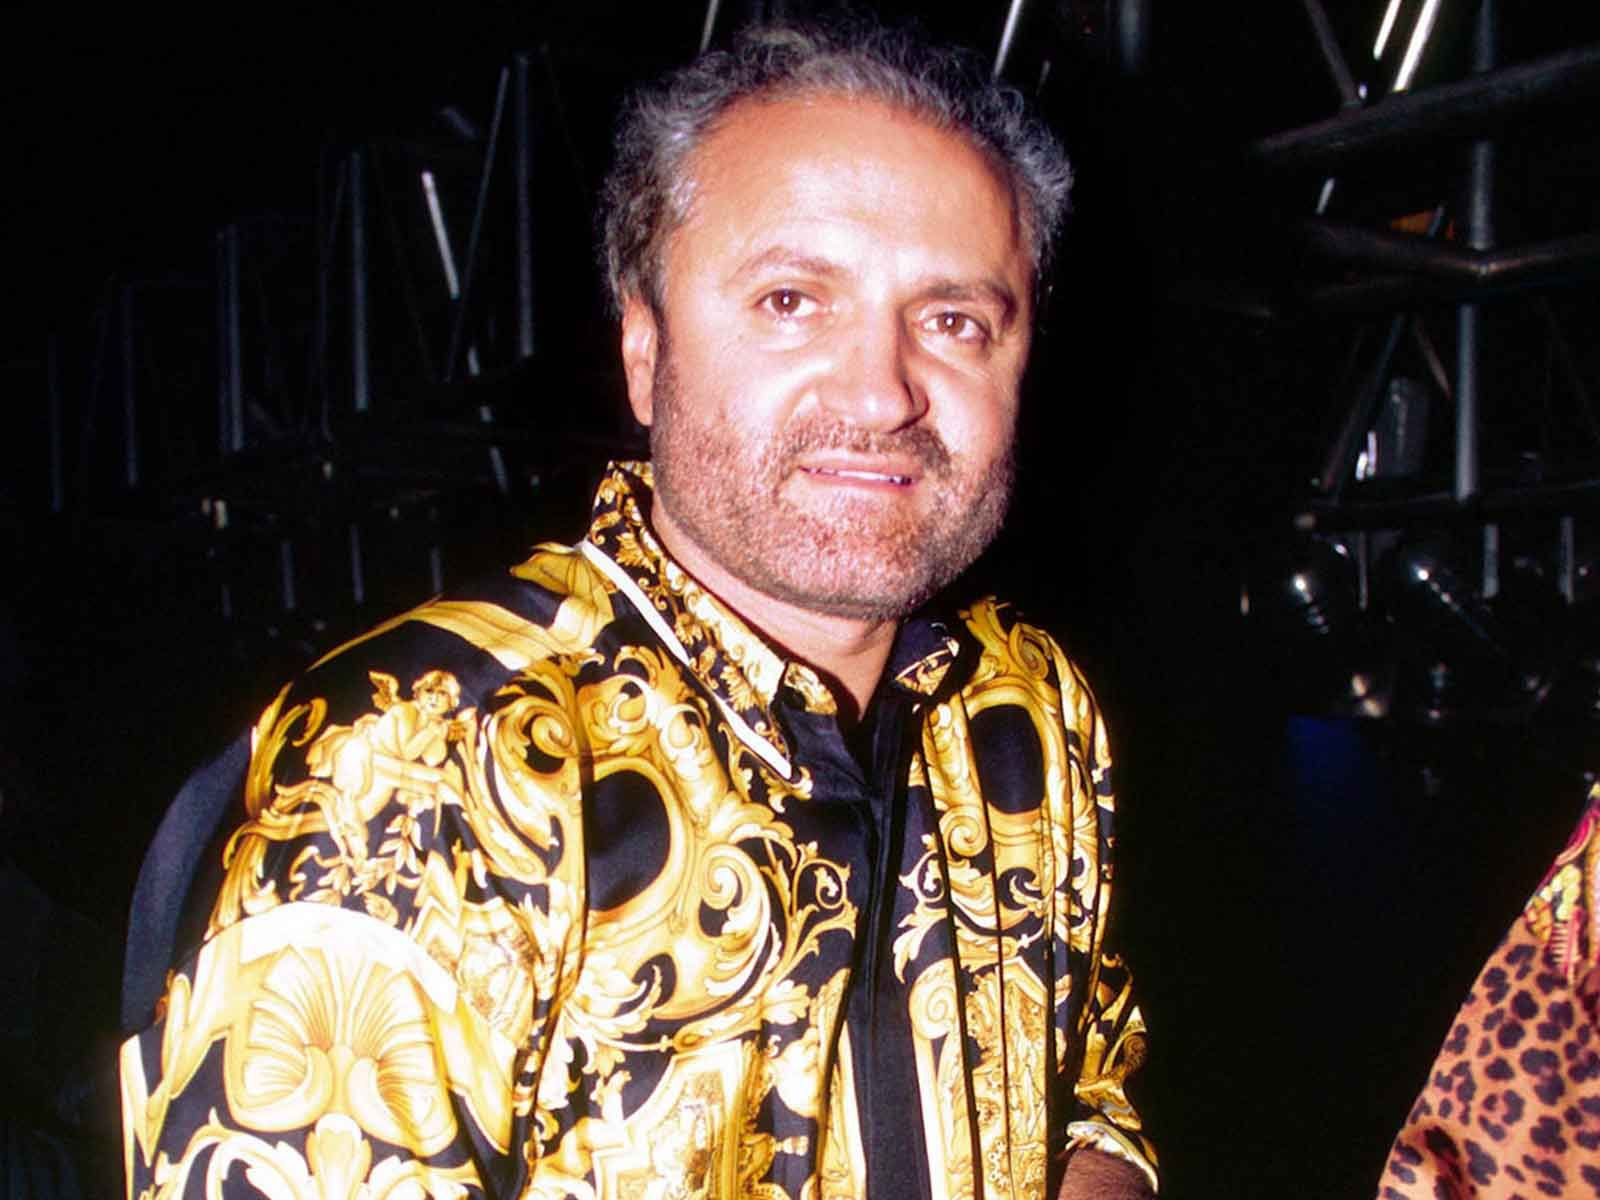 7 Things You Should Know About Gianni Versace